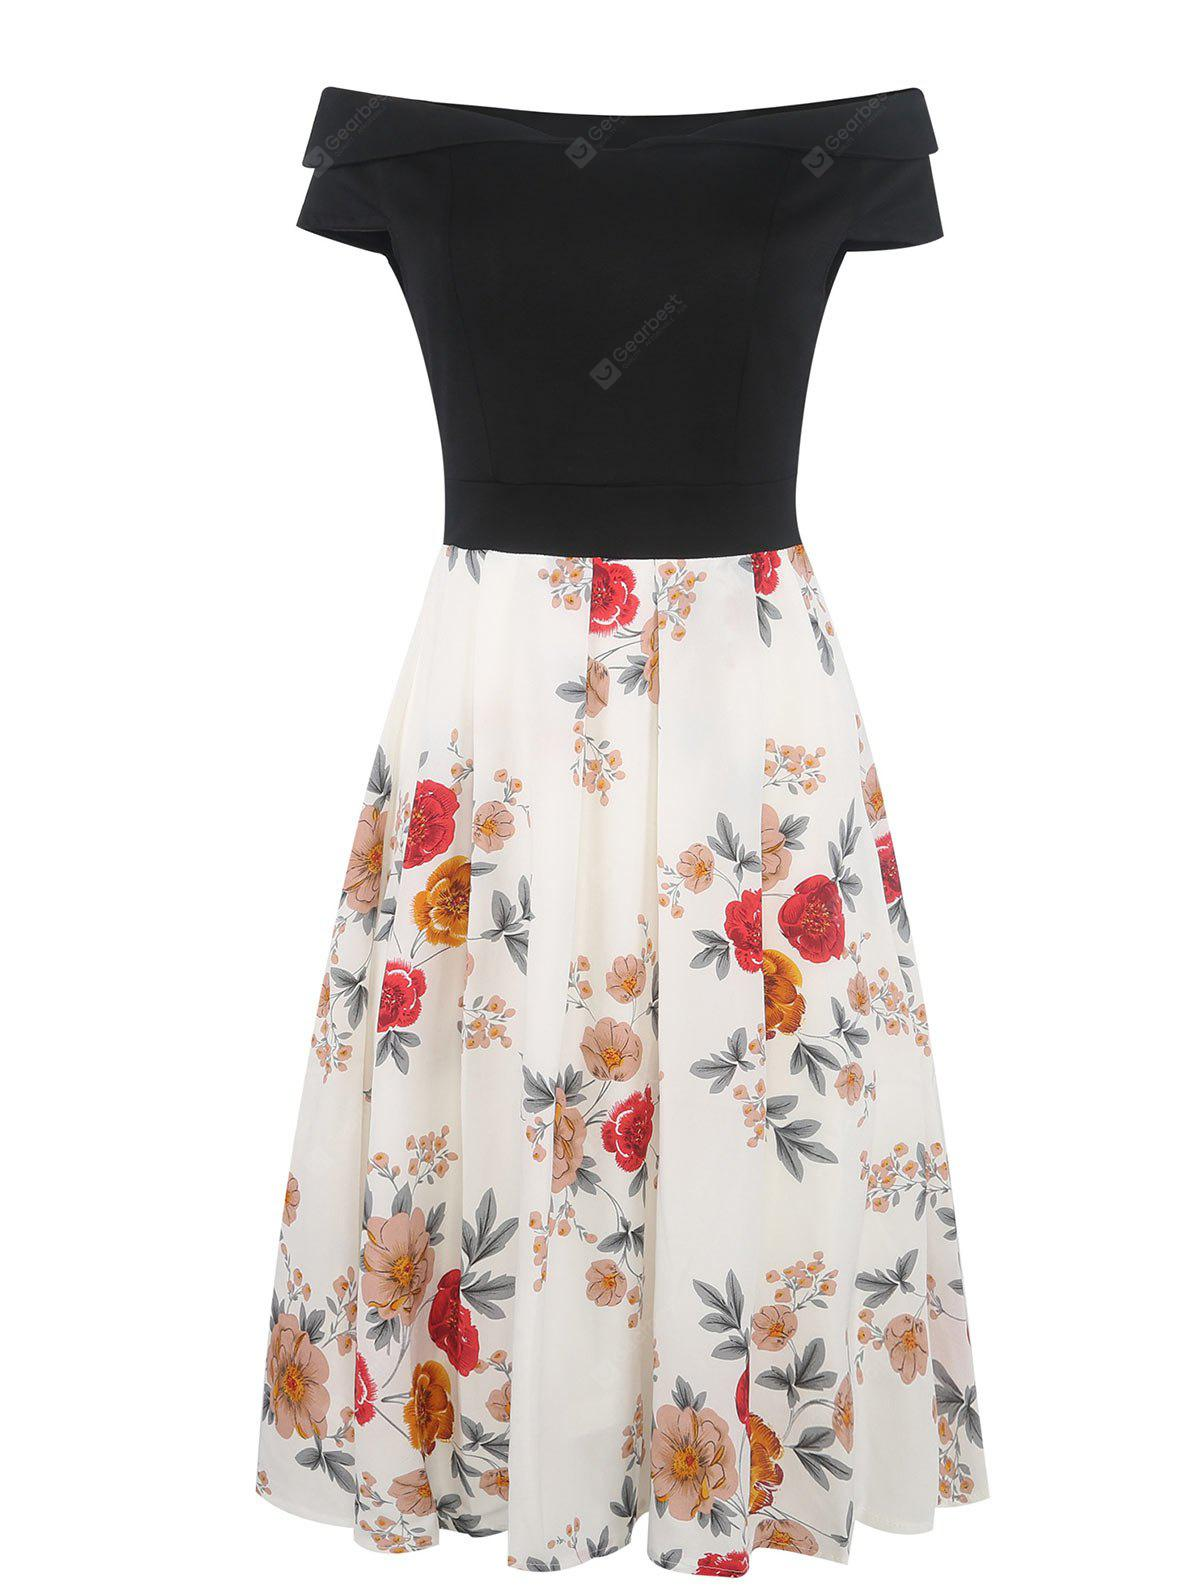 Floral Print Off The Shoulder Fit and Flare Dress